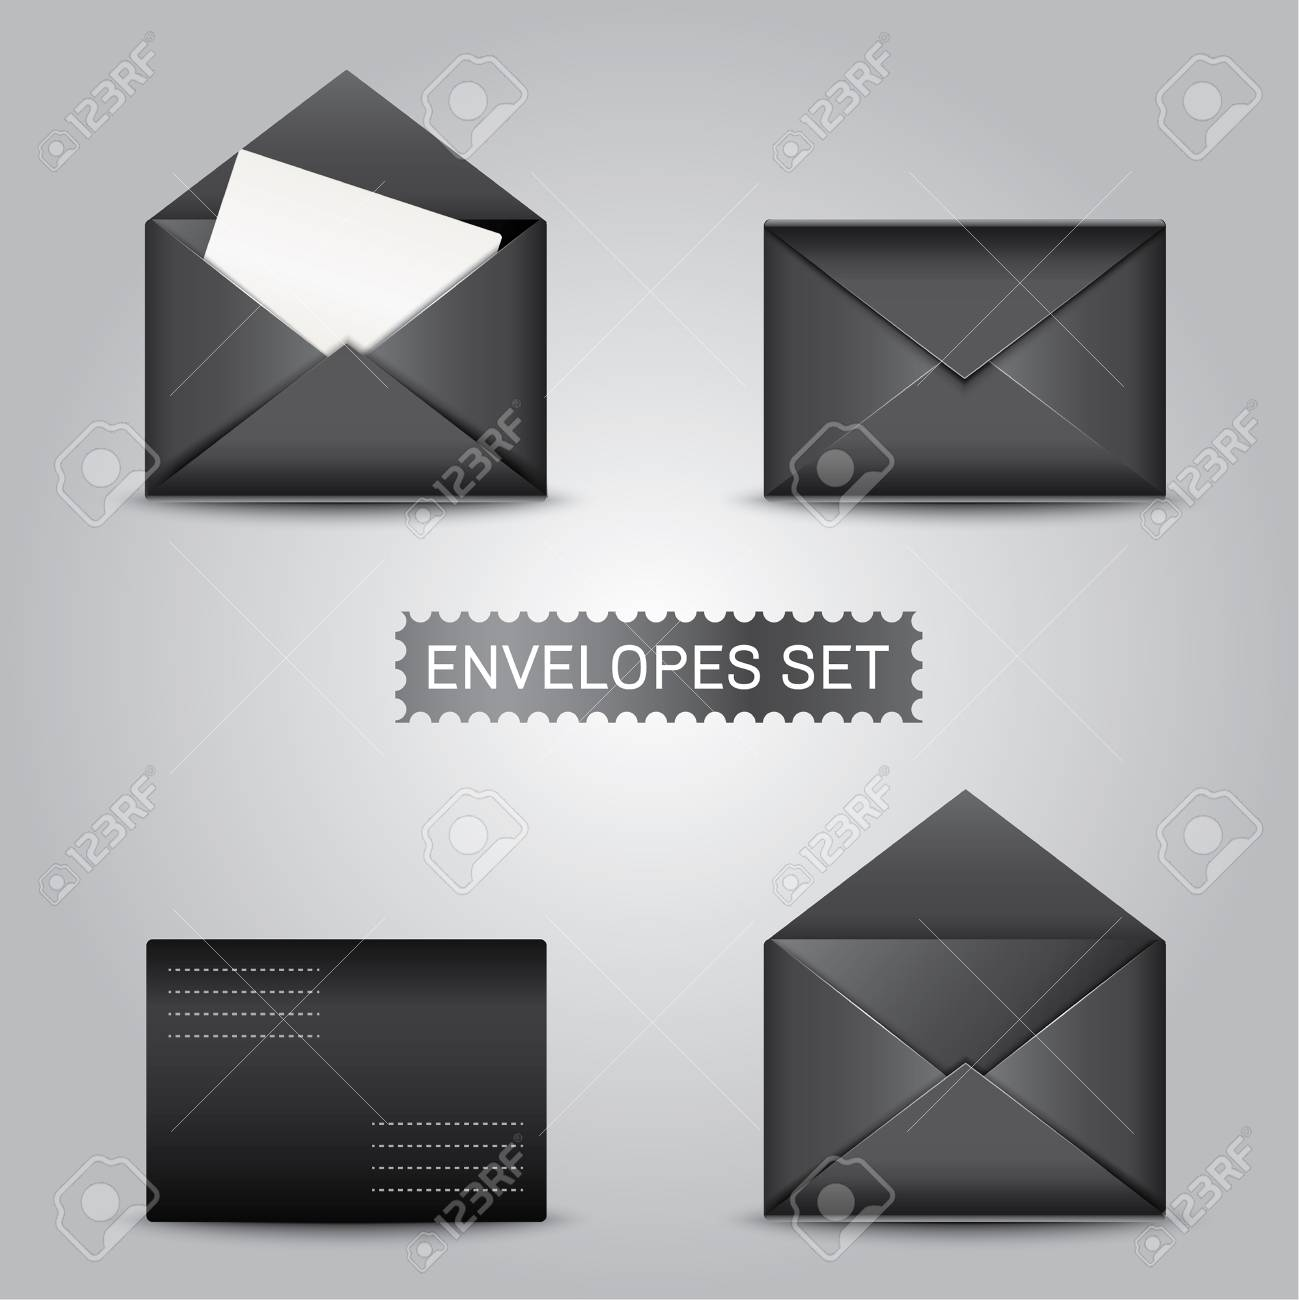 realistic black envelopes envelope blank envelope mock up envelope